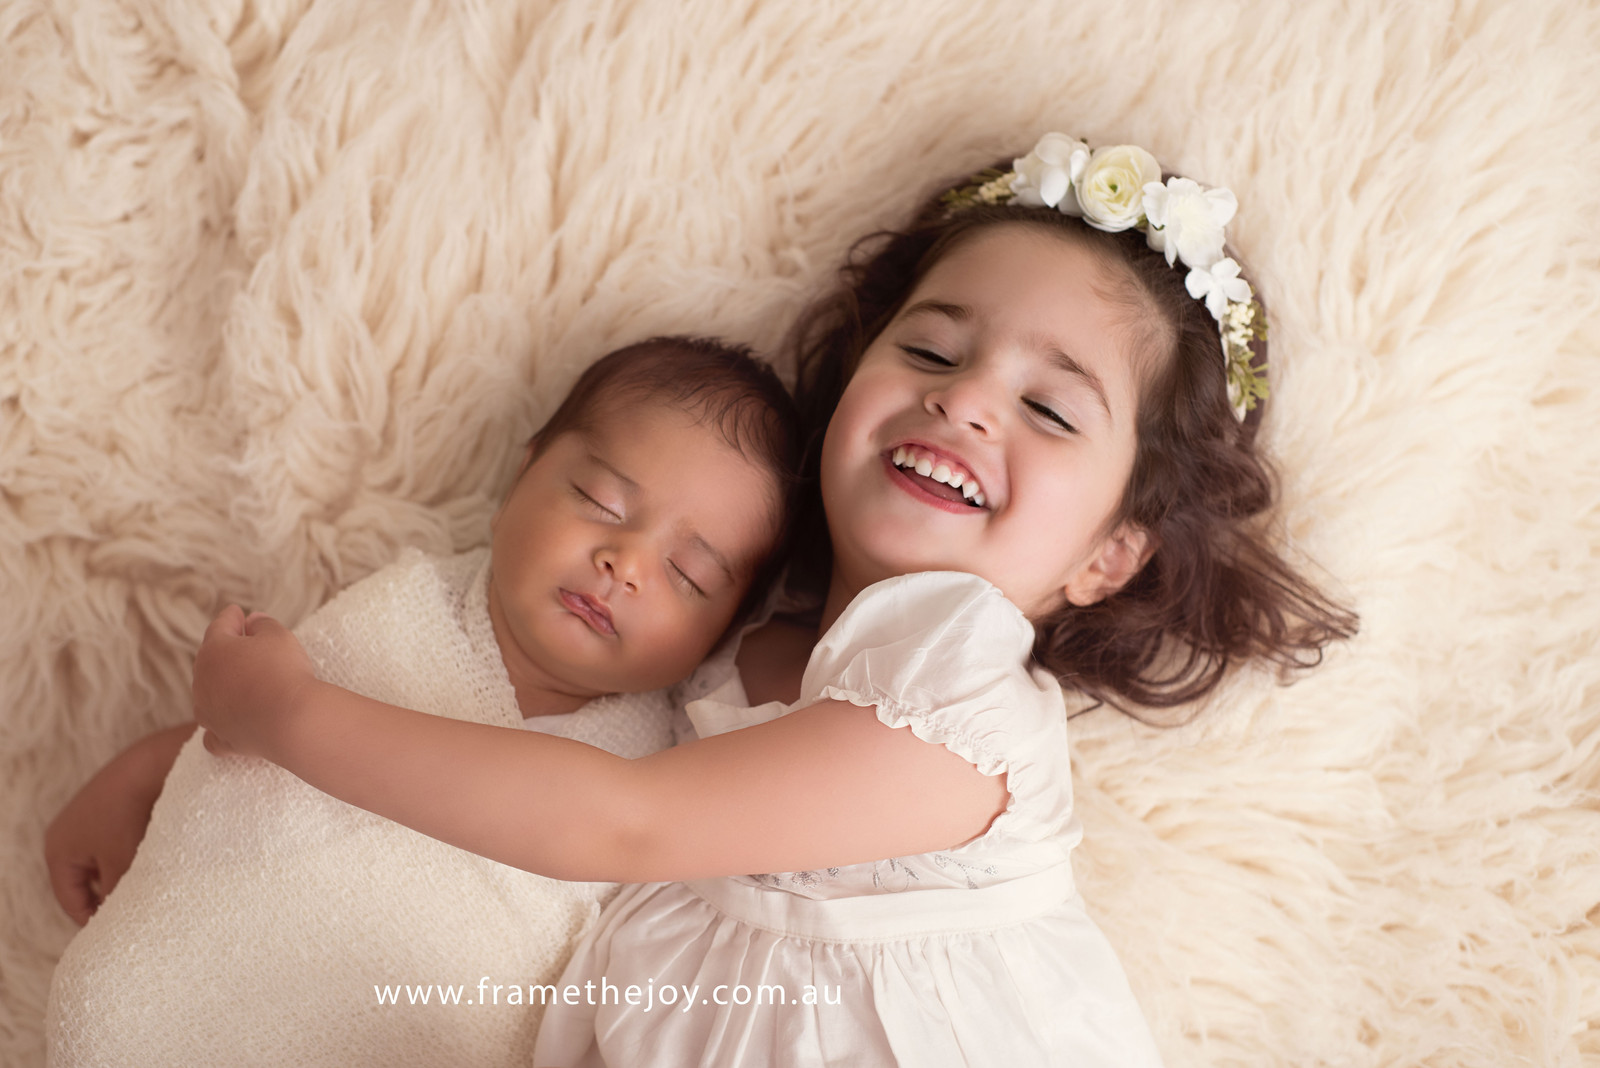 Newborn photography melbourne australia frame the joy photography